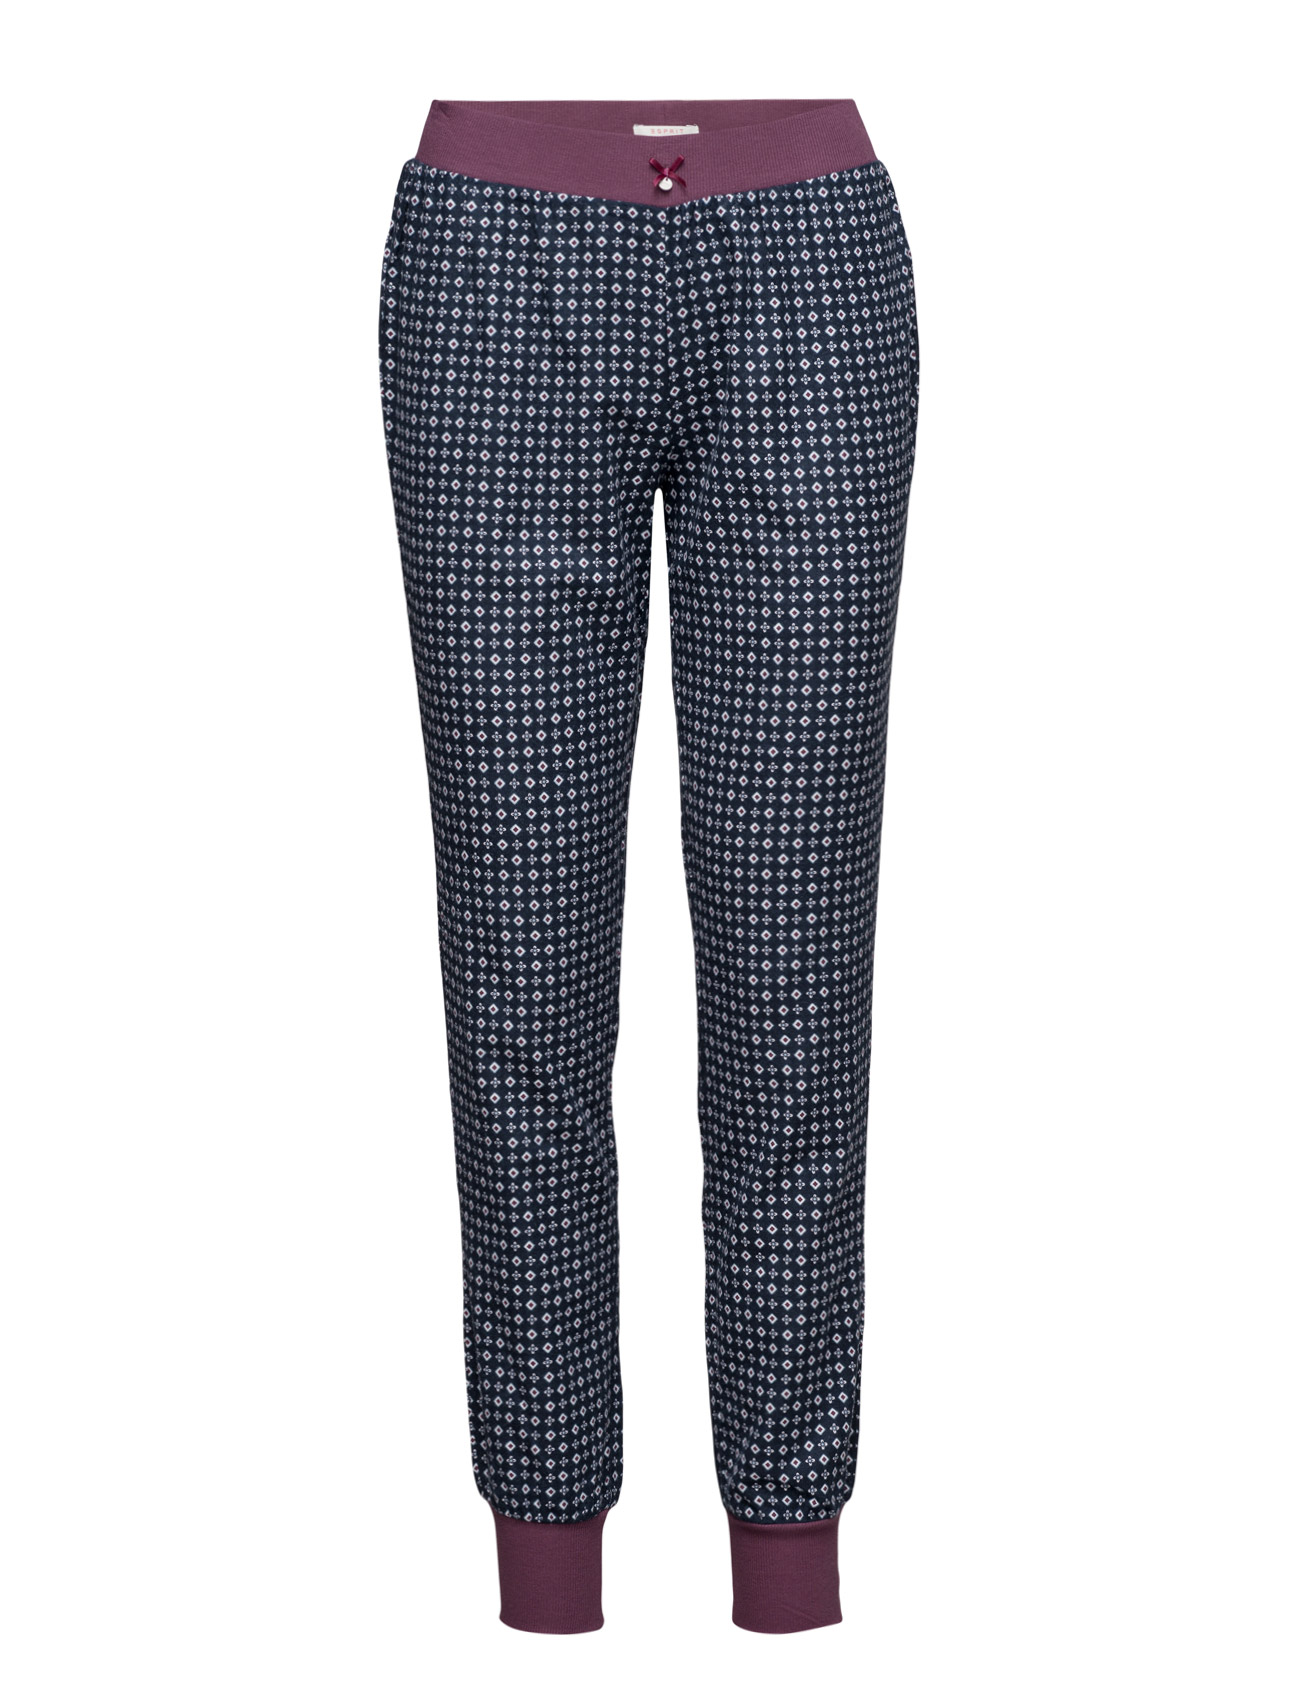 Nightpants Esprit Bodywear Women Loungewear til Kvinder i Navy blå